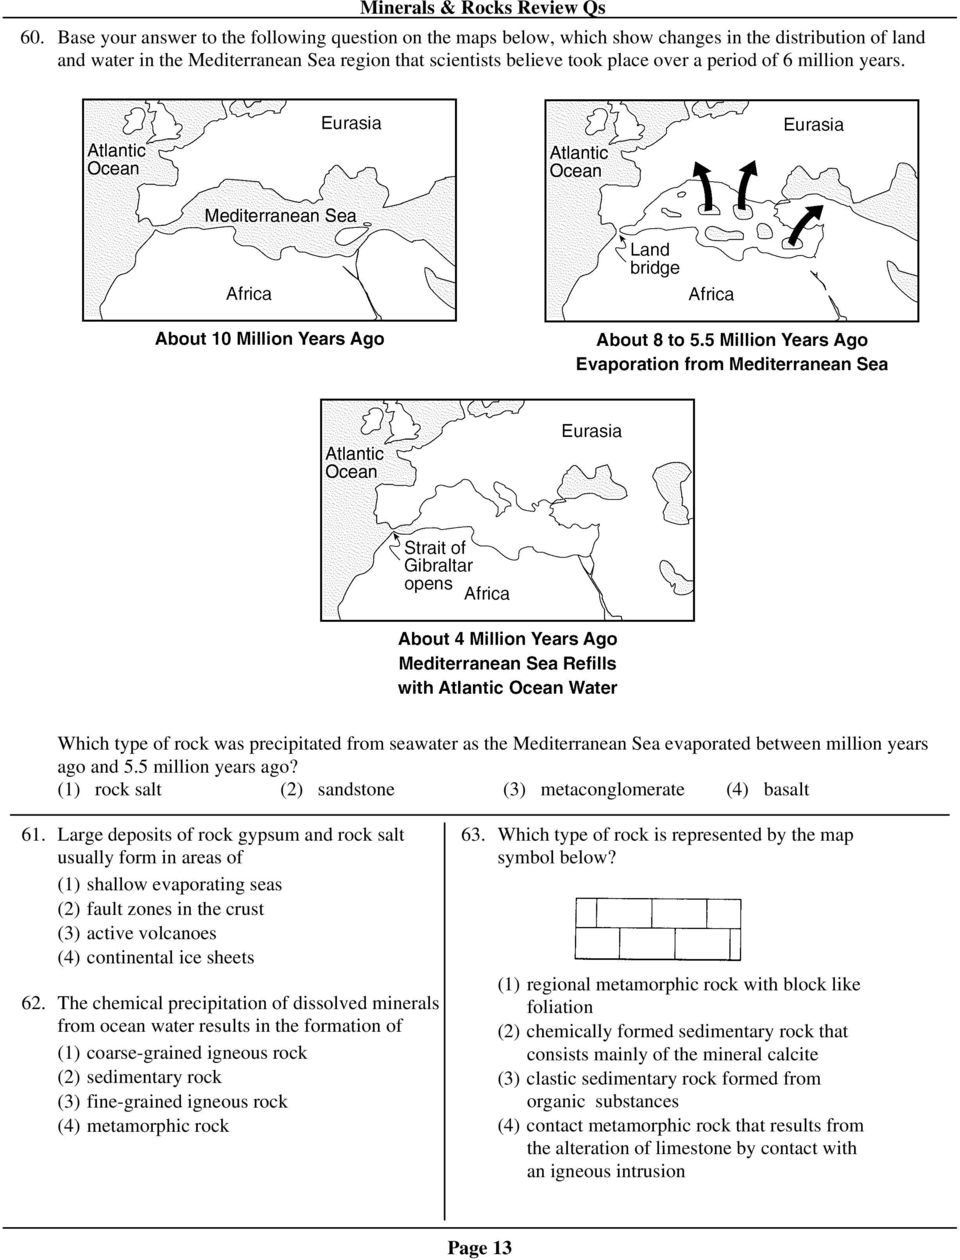 worksheet Sedimentary Rock Formation Worksheet minerals rocks review qs pdf 1 rock salt 2 sandstone 3 metaconglomerate 4